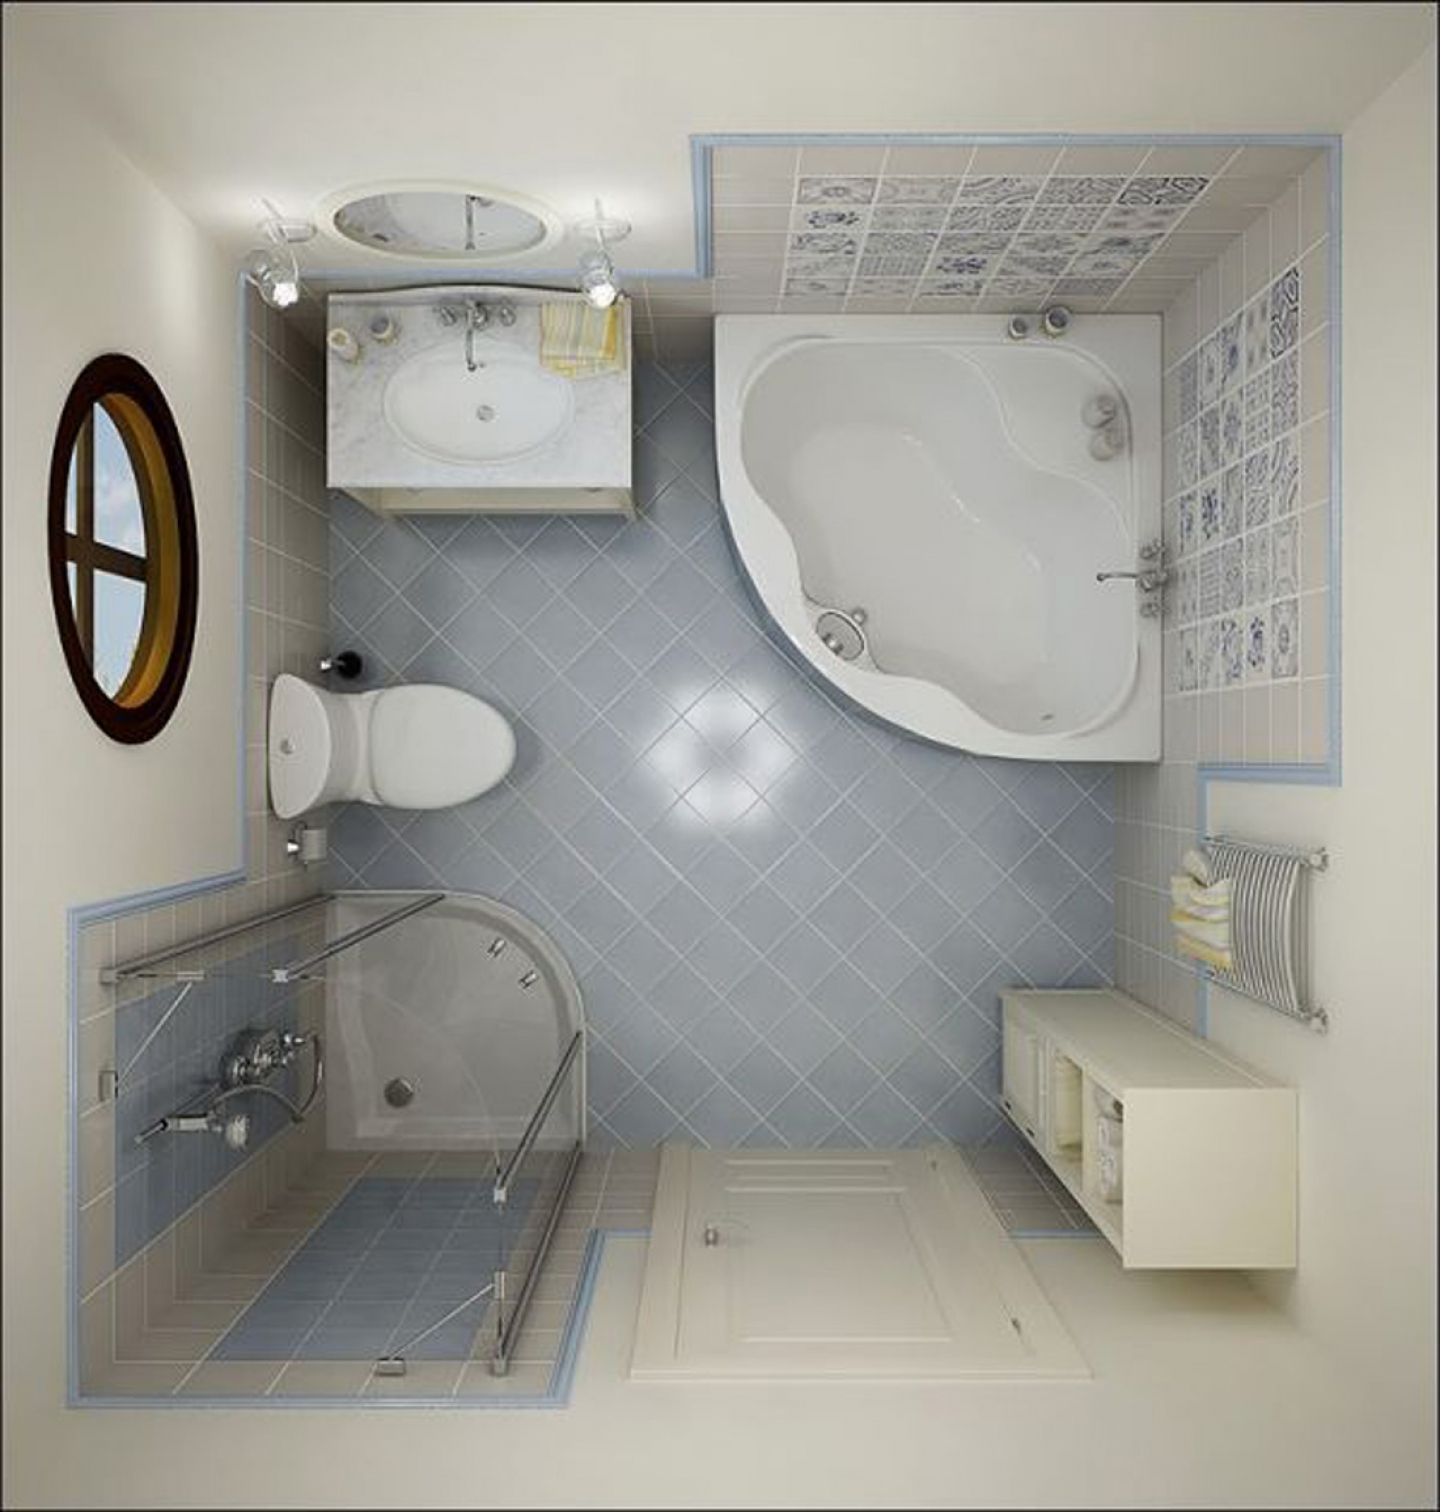 ikea small apartment bathroom layout with new bathrooms ideas small bathrooms and corner curved ceramic bathtub in small bathroom - Bathroom Remodel Corner Tub